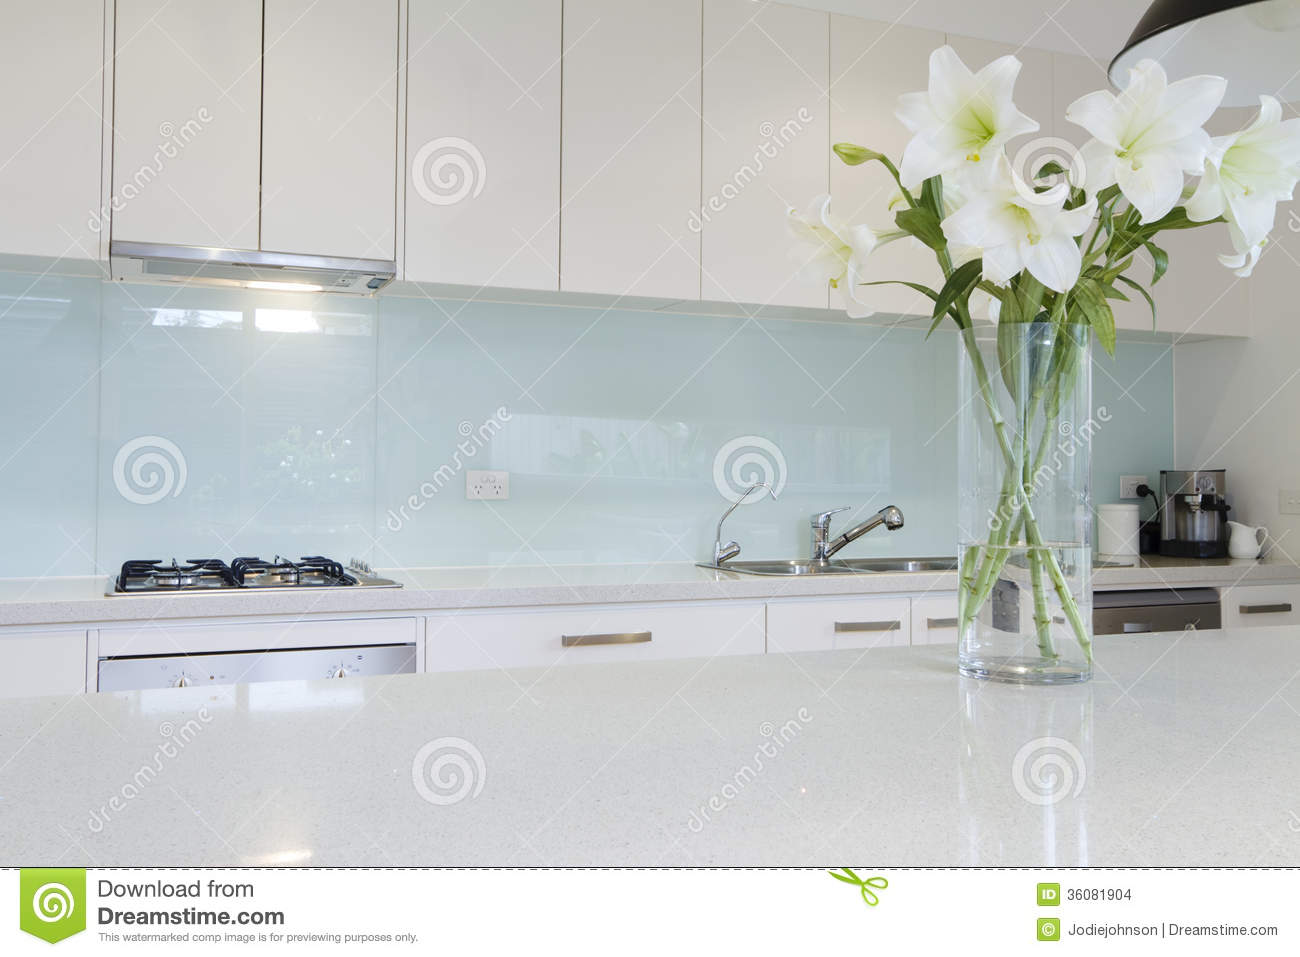 Flowers On White Kitchen Bench Stock Photo - Image of detail, decor ...